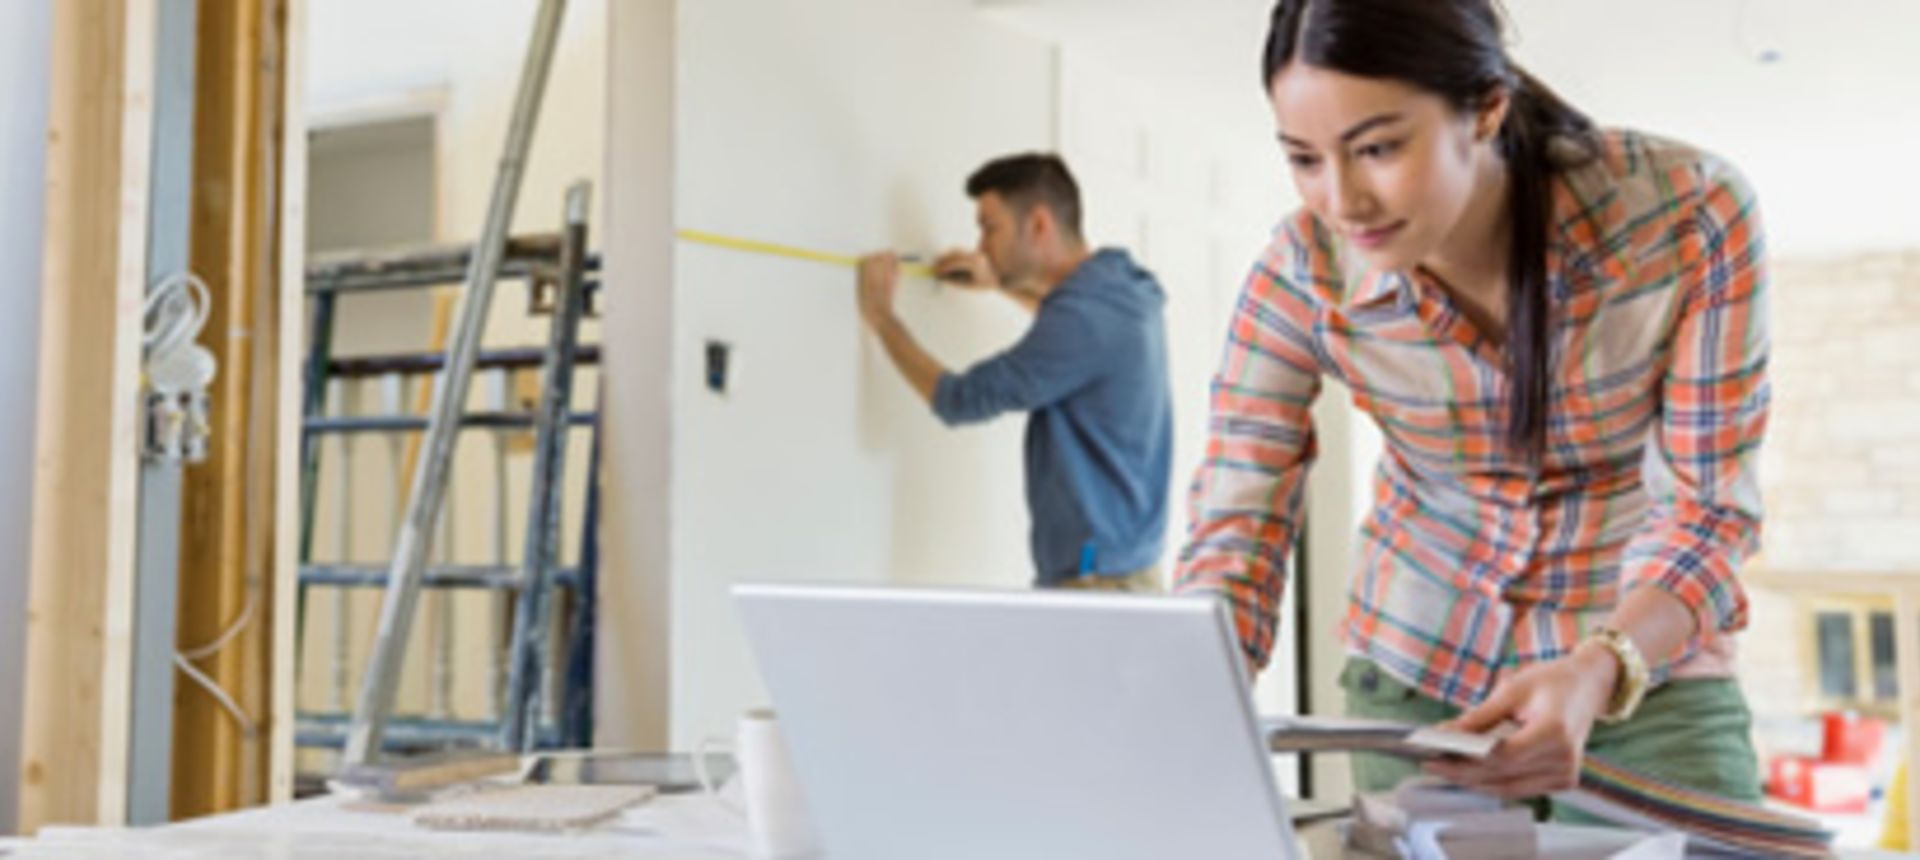 Budget friendly projects with a big ROI